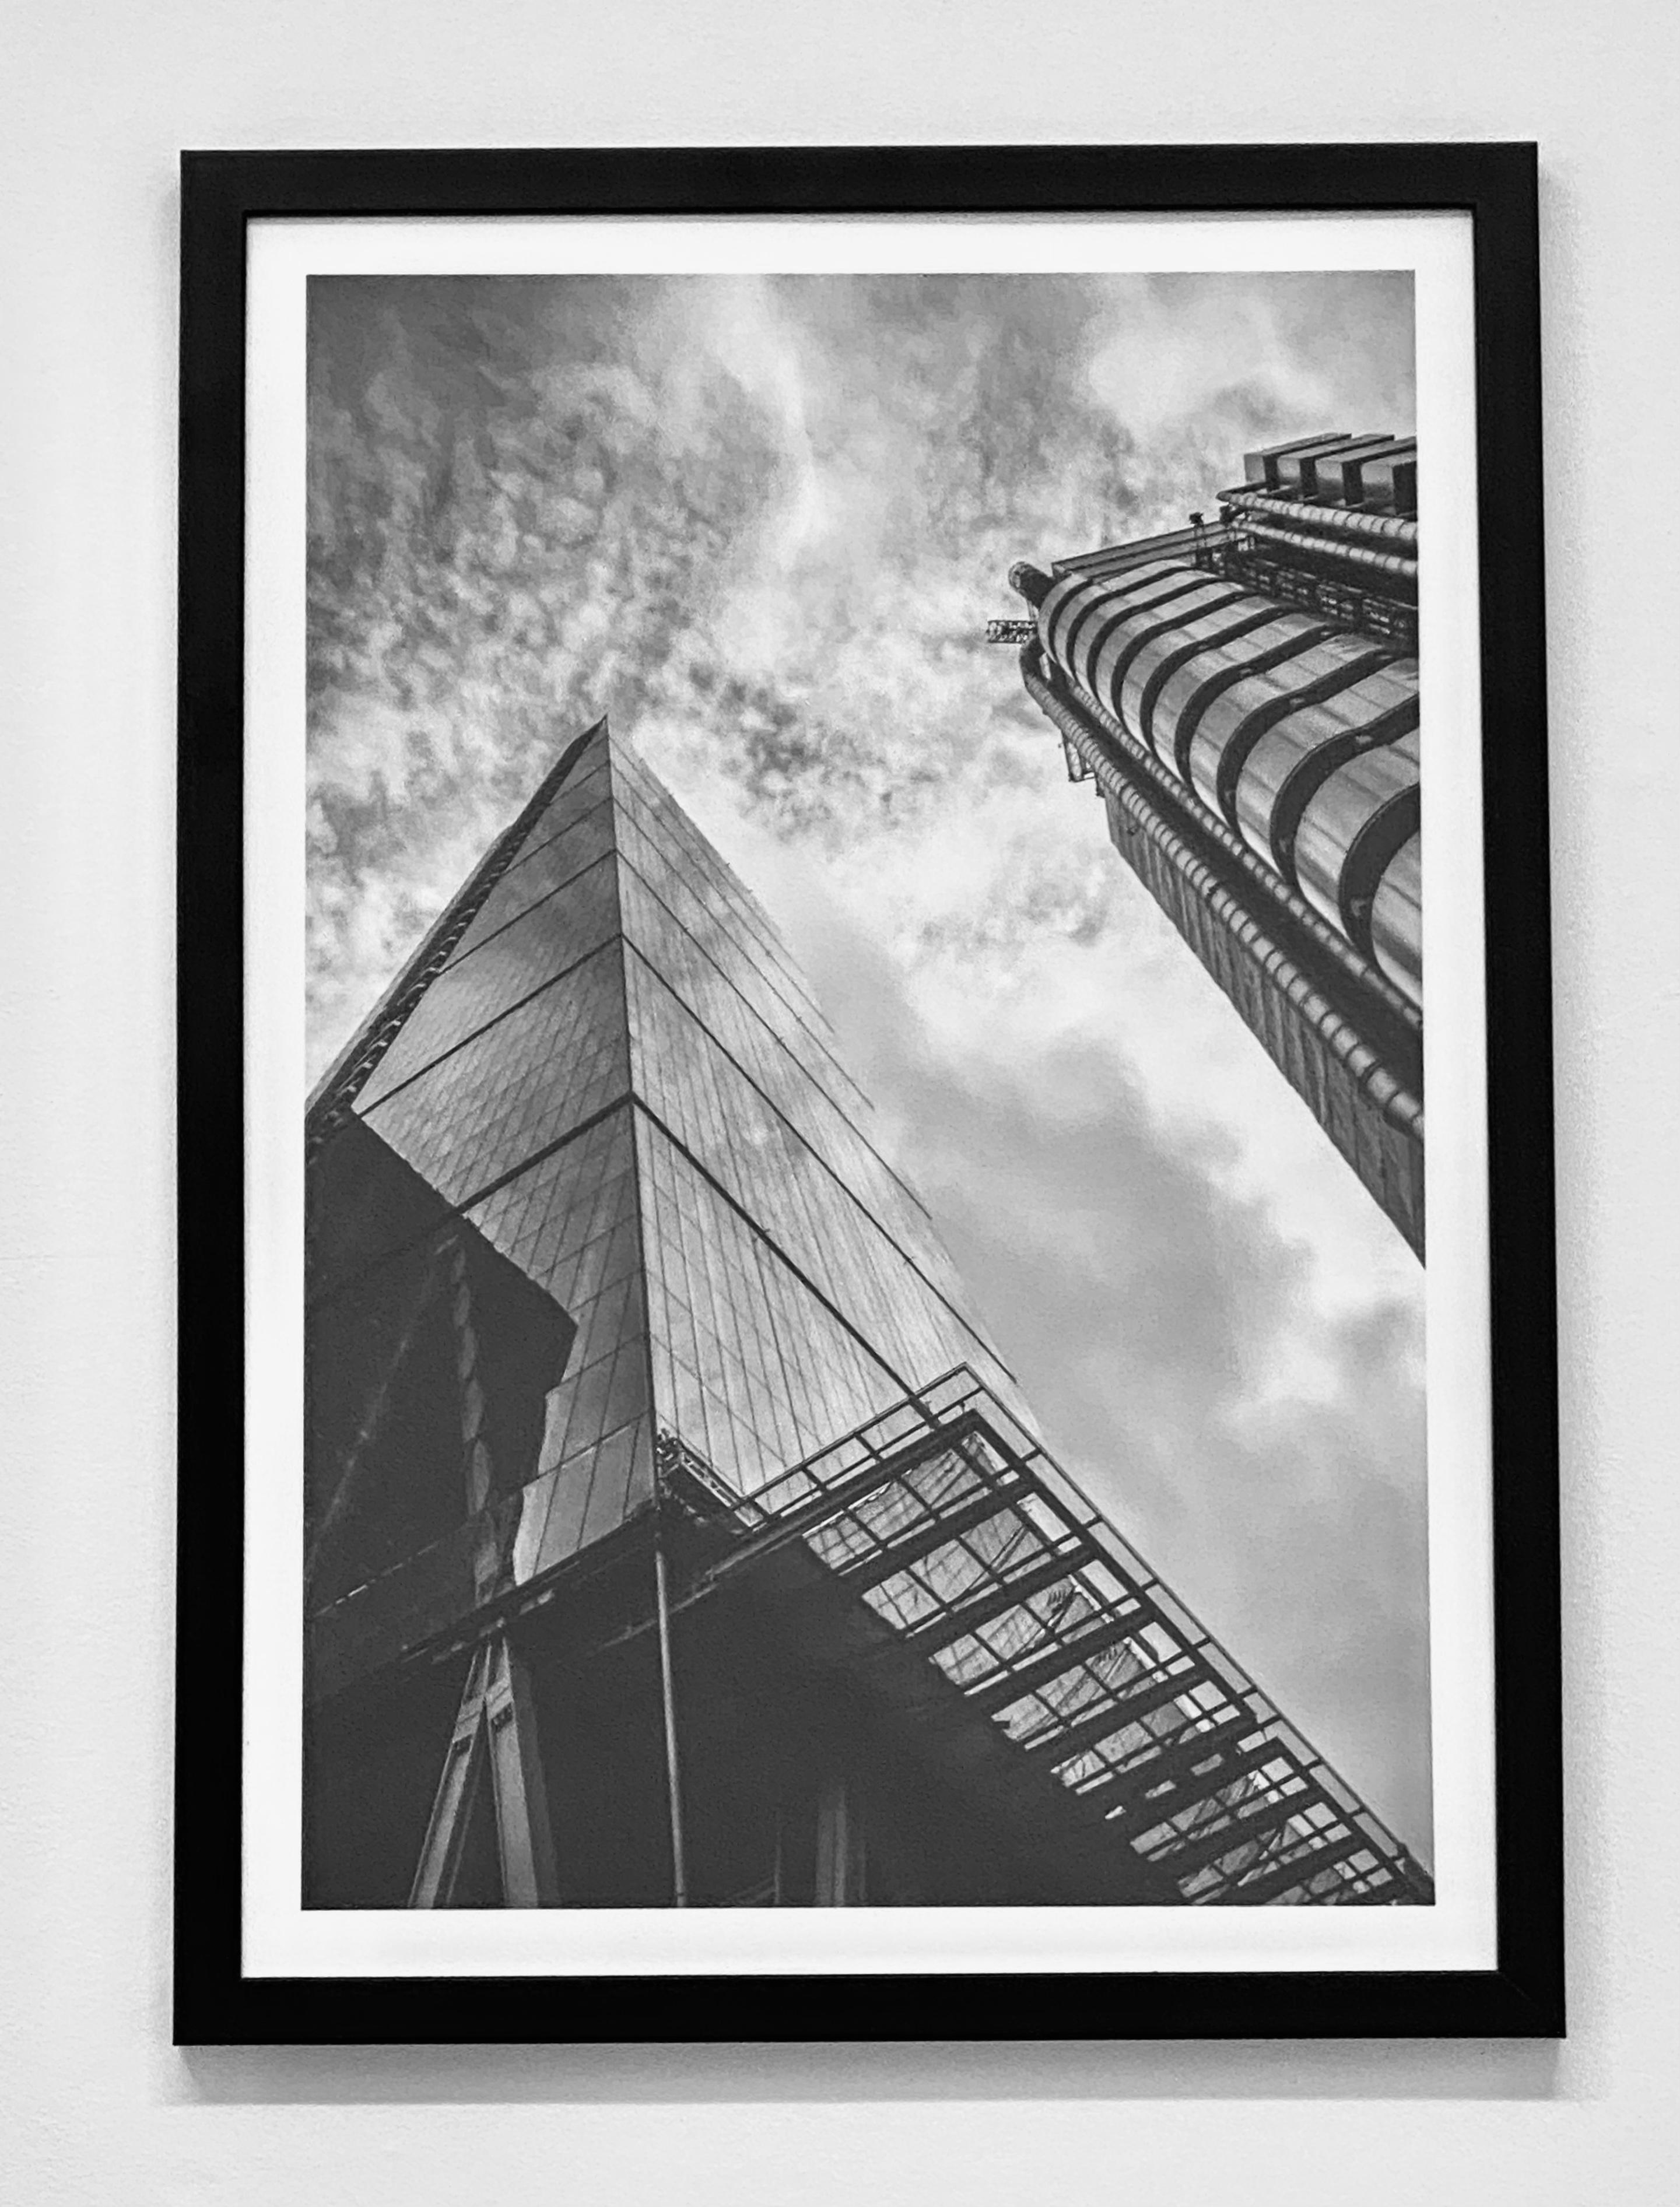 Our Cheesegrater wall art print from our London collection in a black frame, at A2 size.